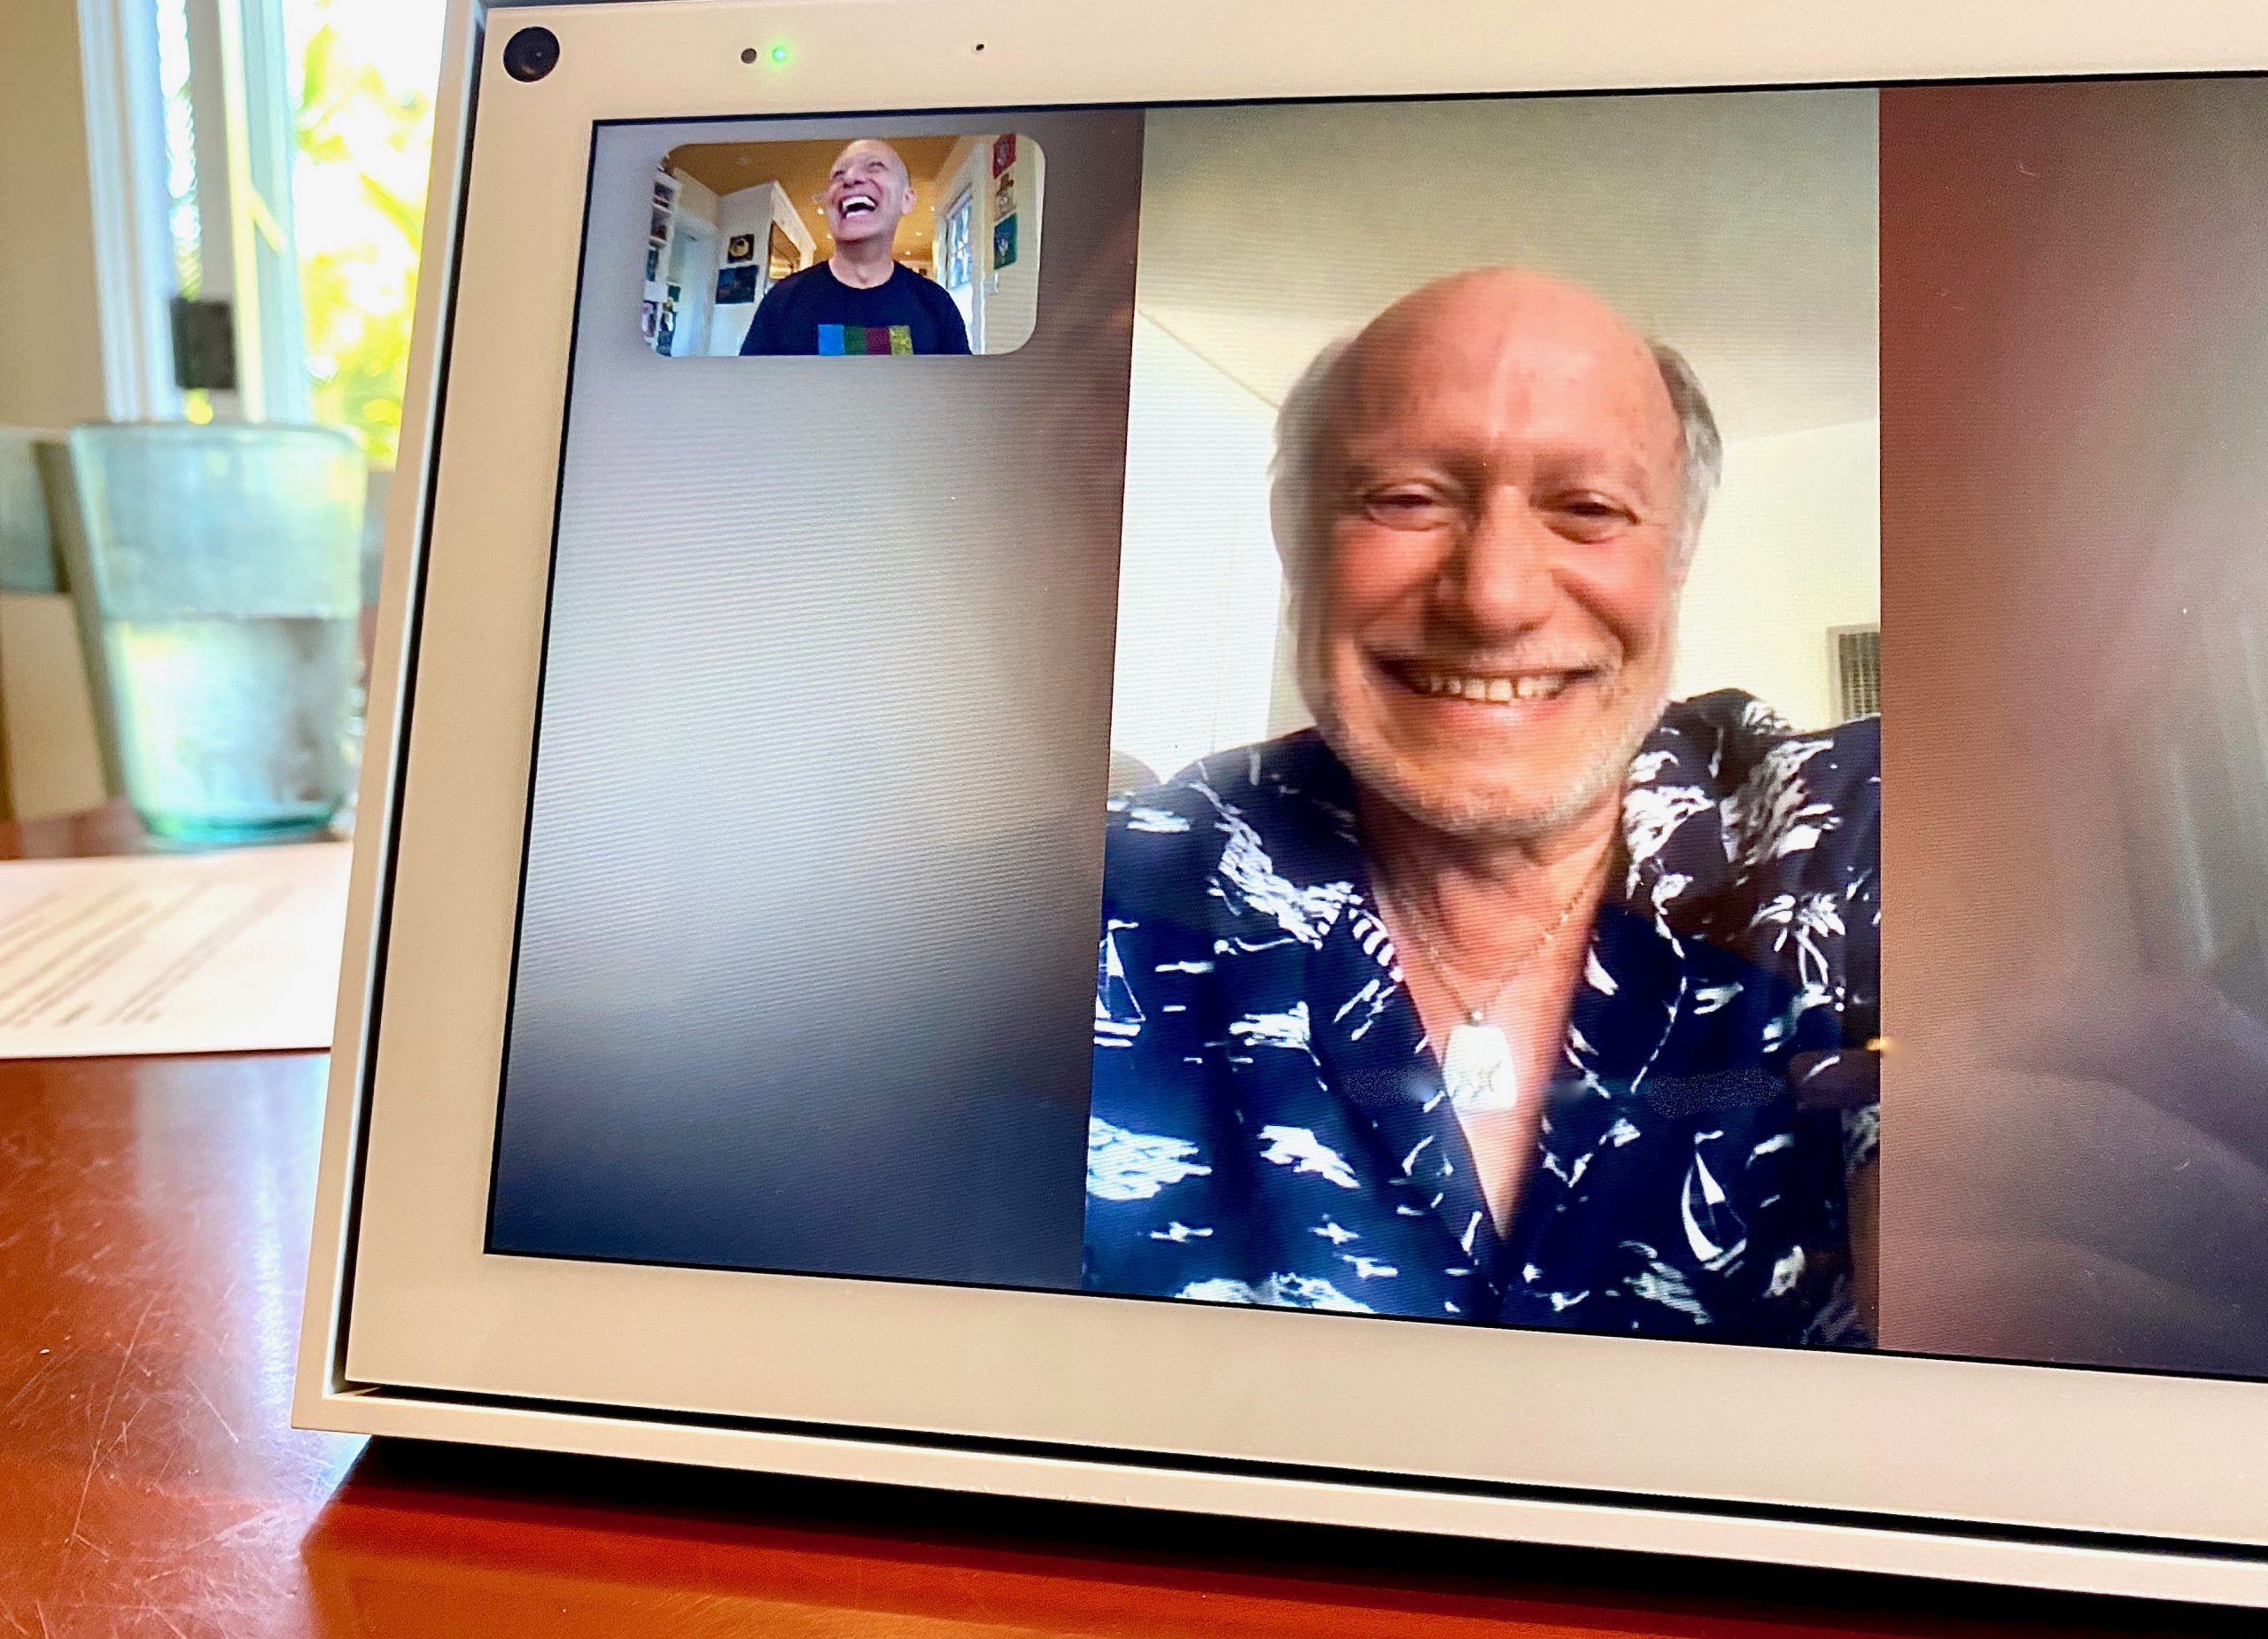 Two men laugh during video chat on Portal by Facebook.